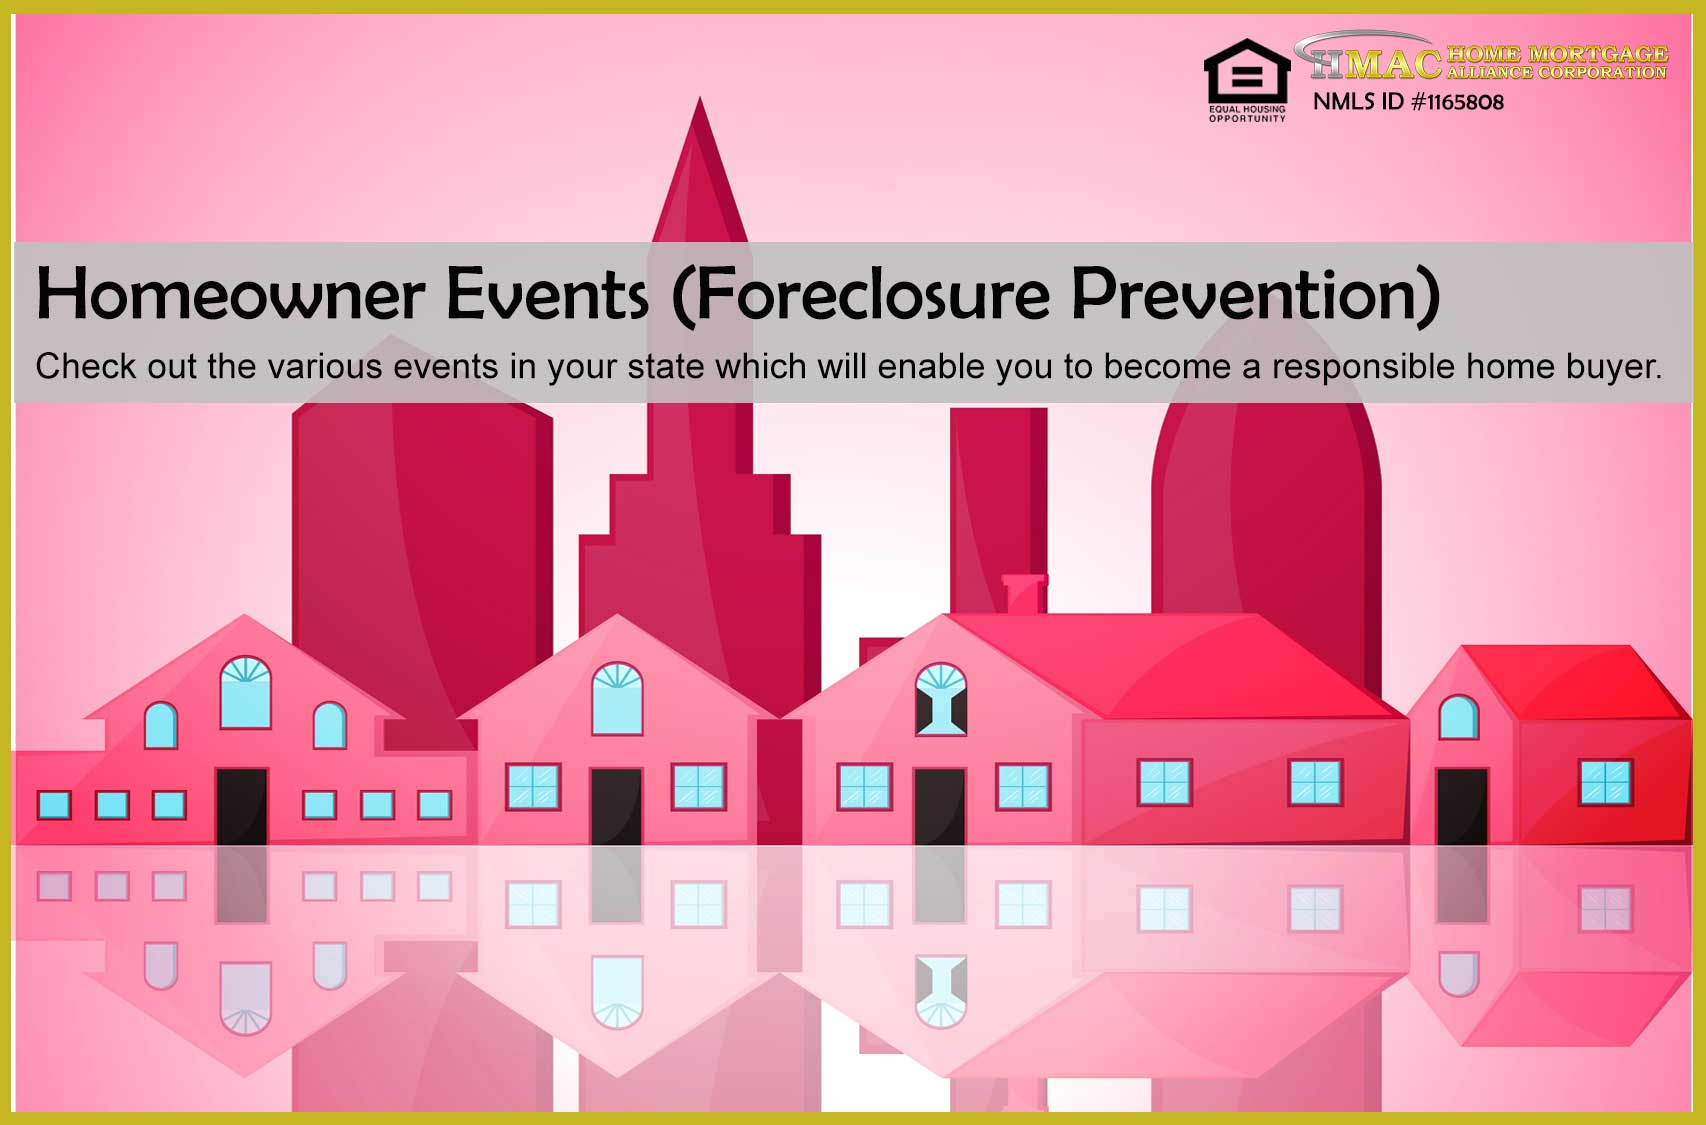 Homeowner Events (Foreclosure Prevention)